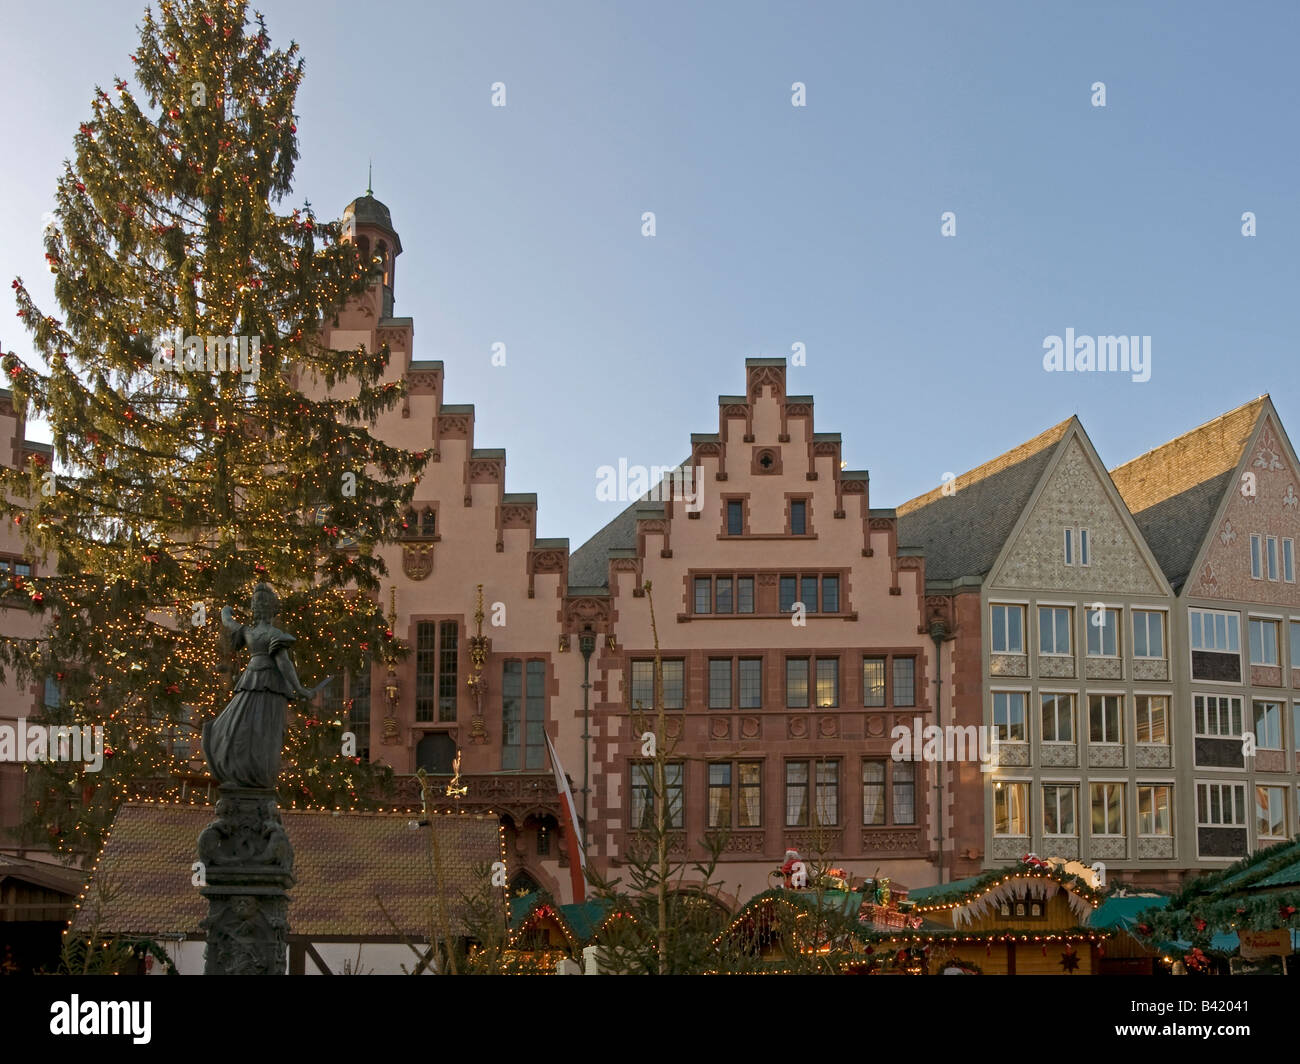 Christmas tree with fairy lights and boothes background city hall statue Justitia square Roemer Römer Römerberg - Stock Image